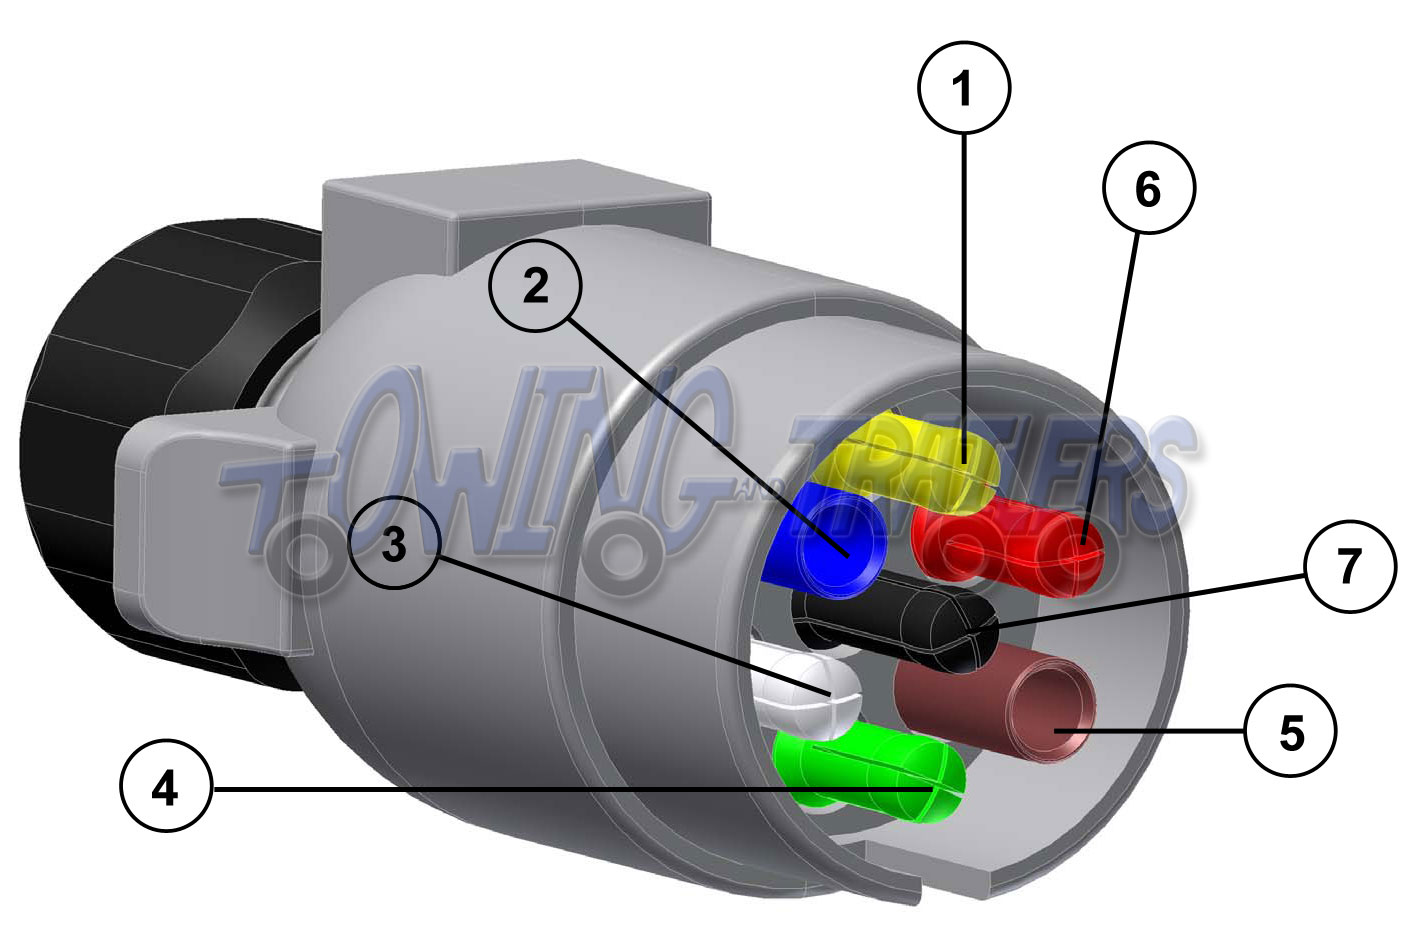 wiring diagram 7 pin trailer plug uk 3d origami animals socket south africa solutions